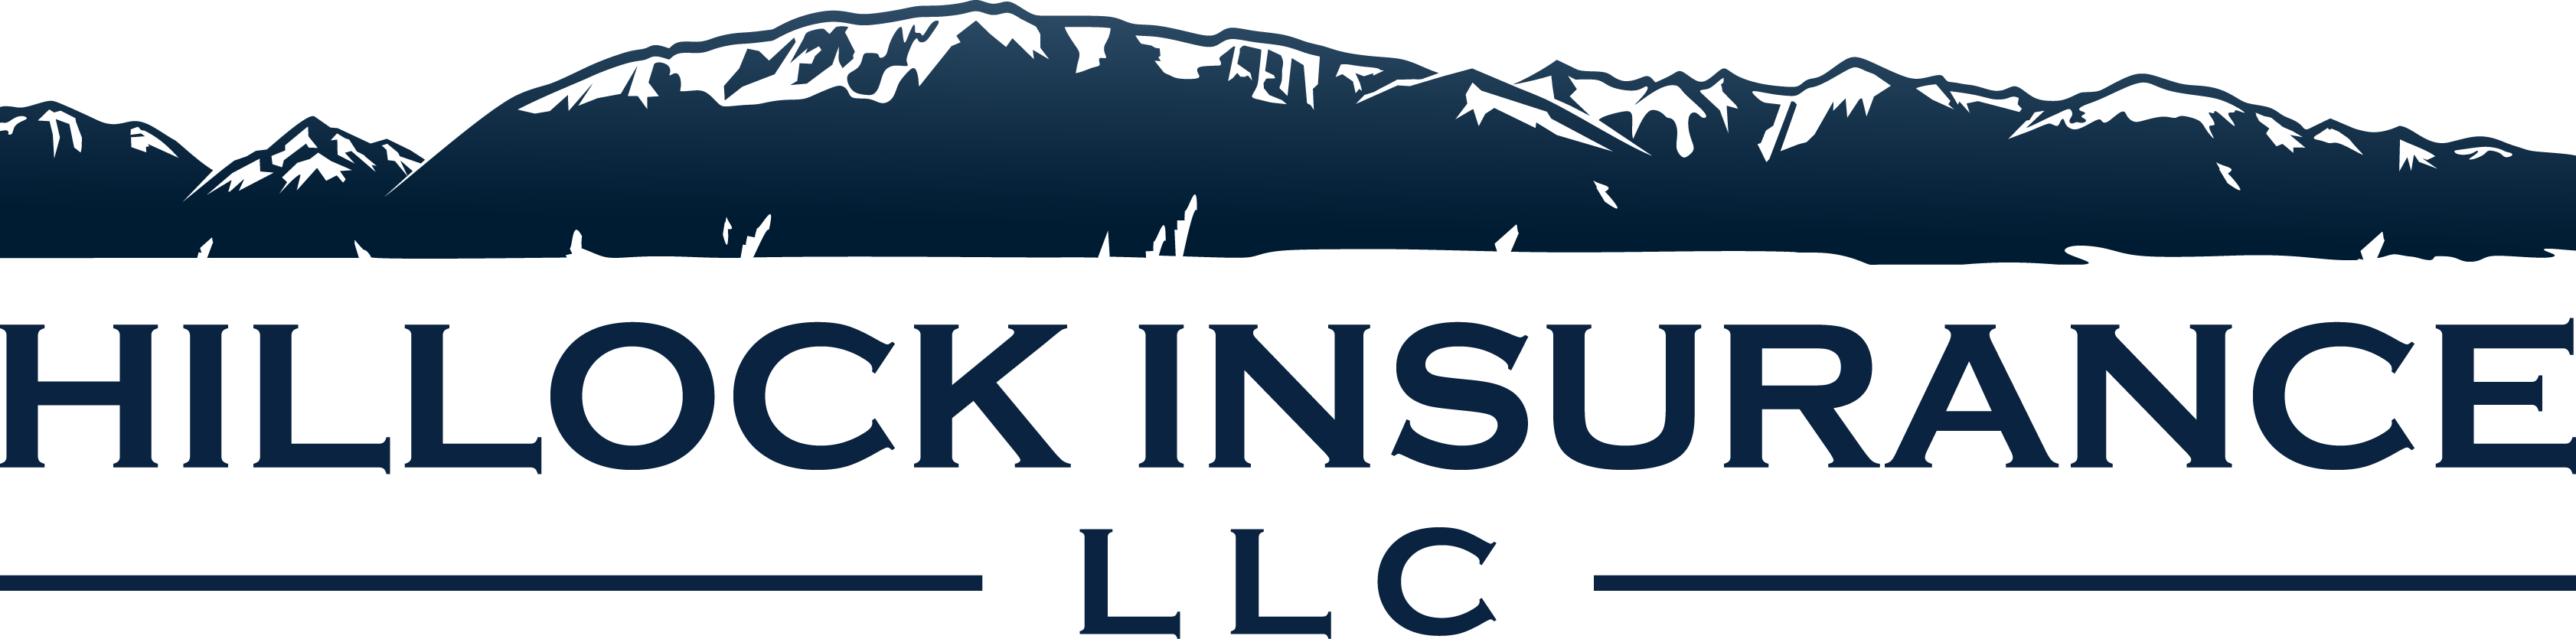 Let's see who can climb the highest peak and create a mountainous logo for my insurance agency!